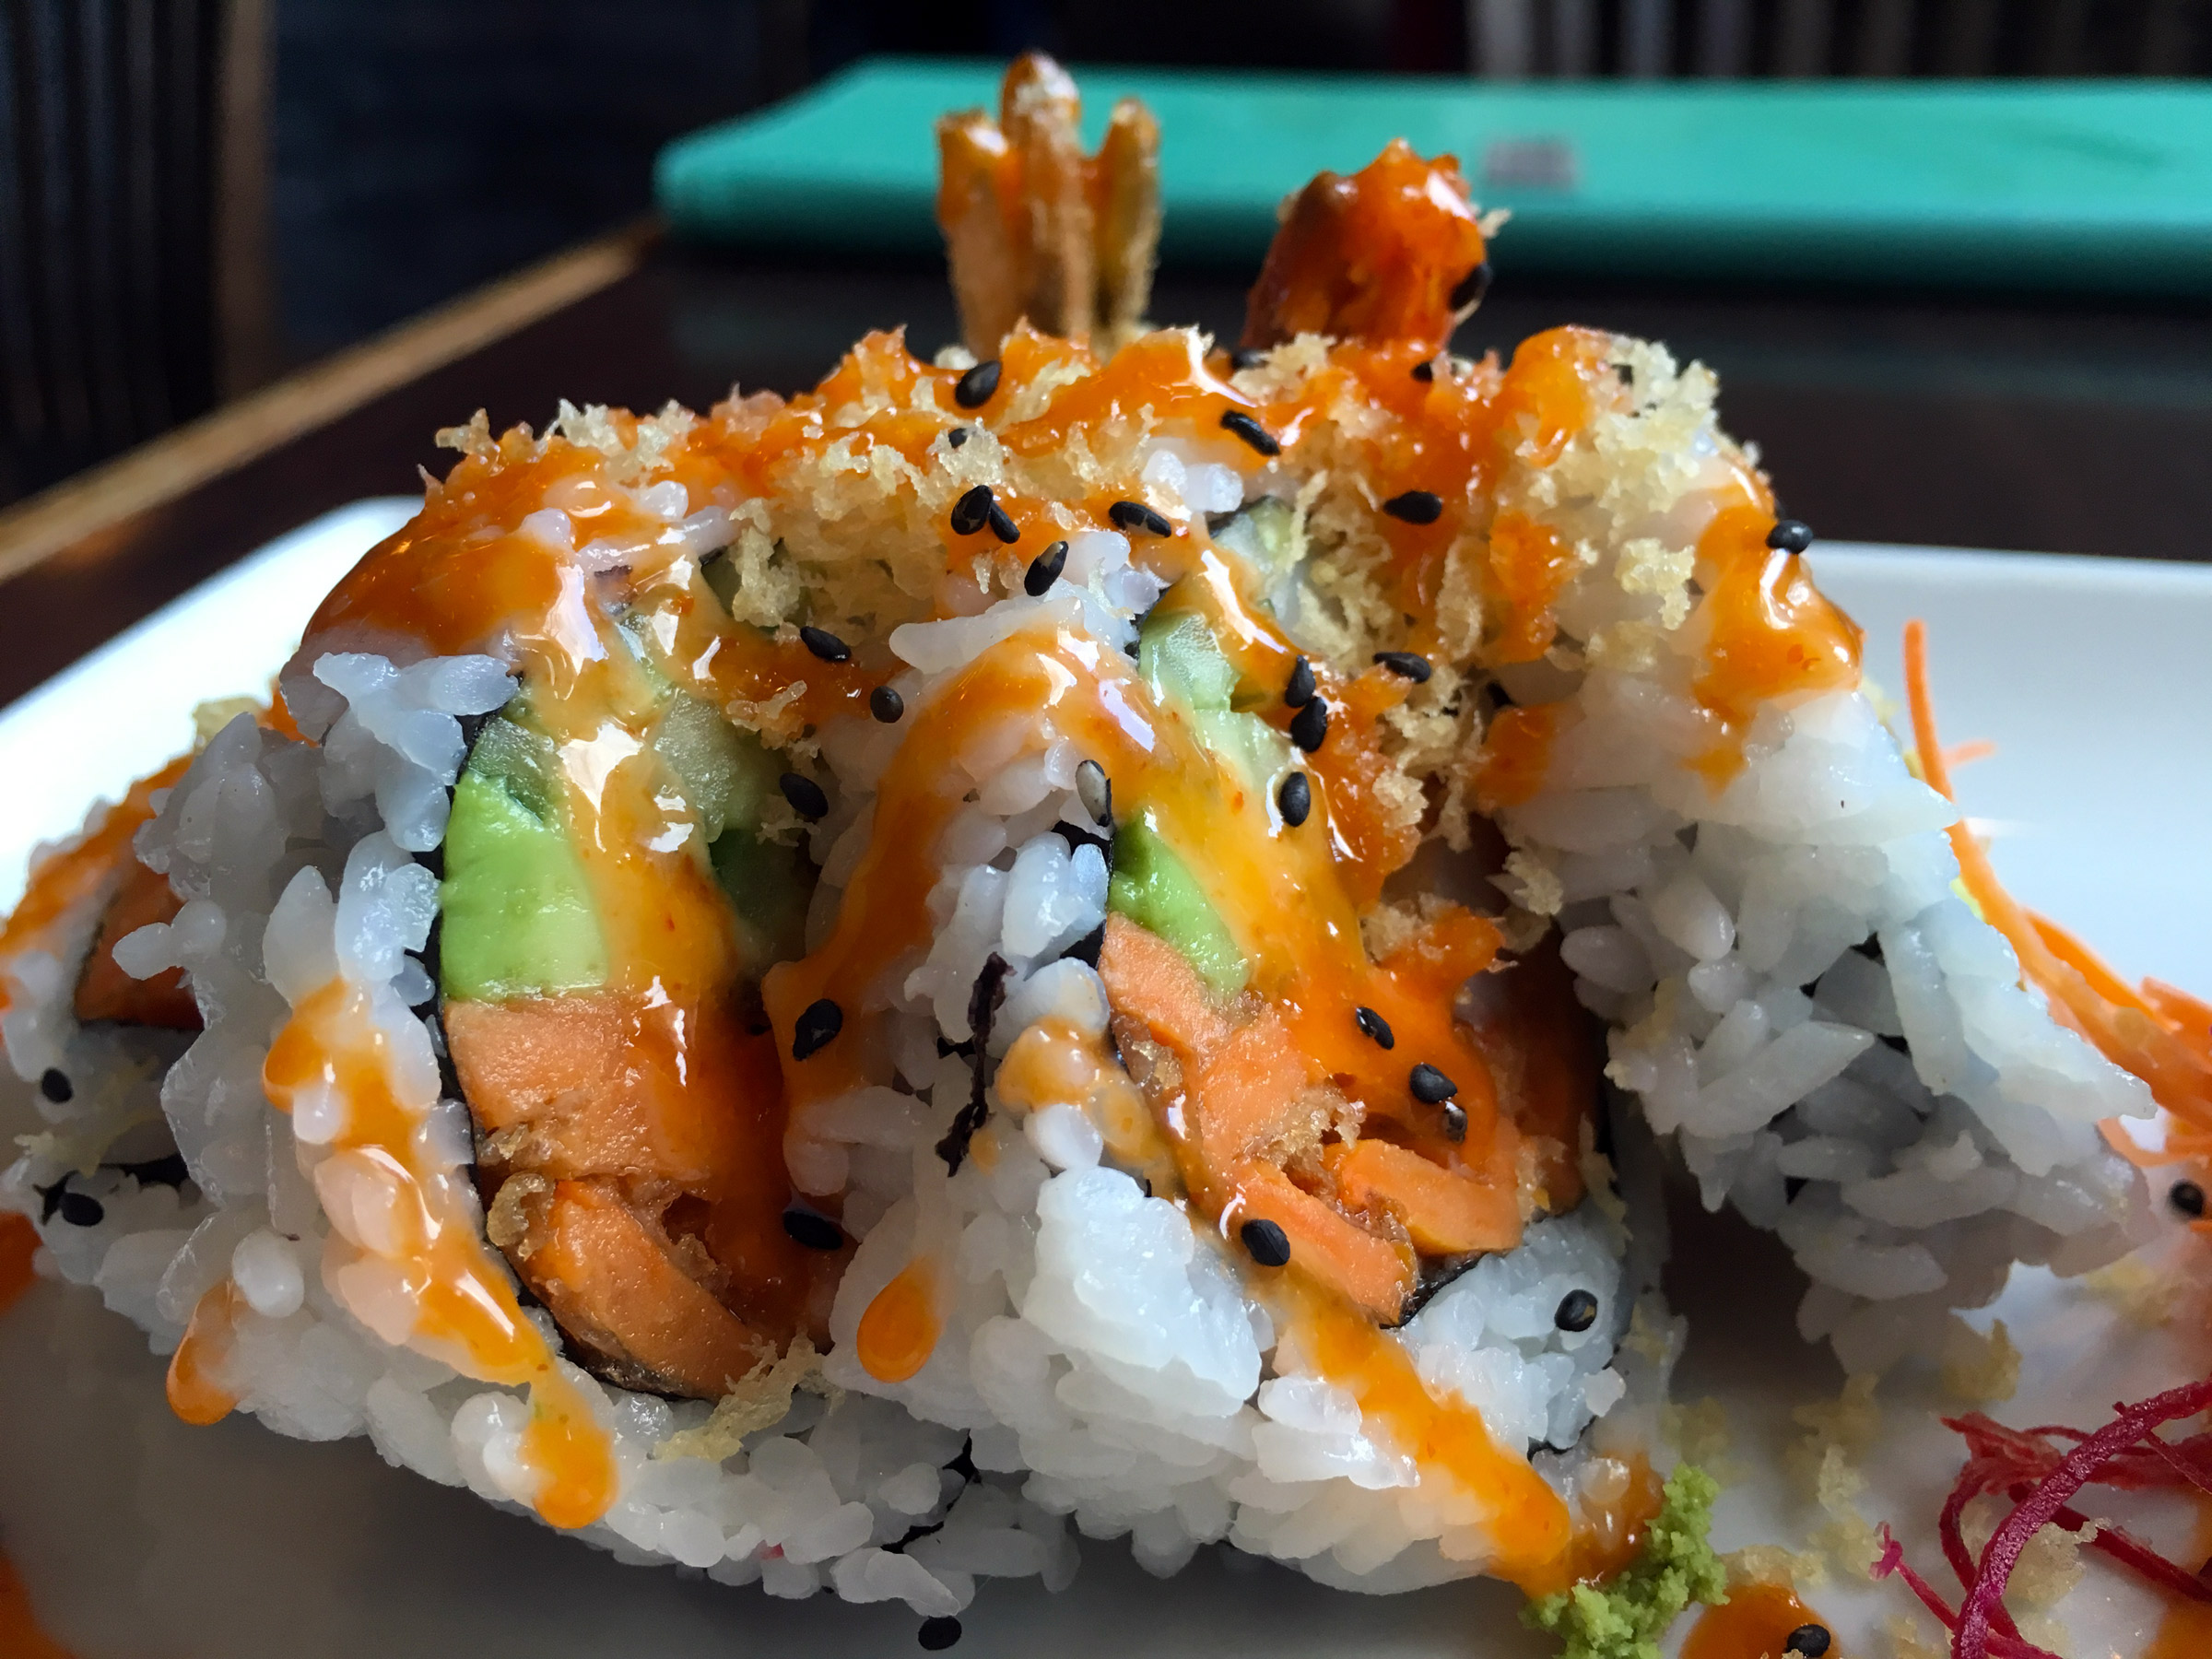 The Crunchy Go-Go Roll at Sushi Bella in Burnaby.